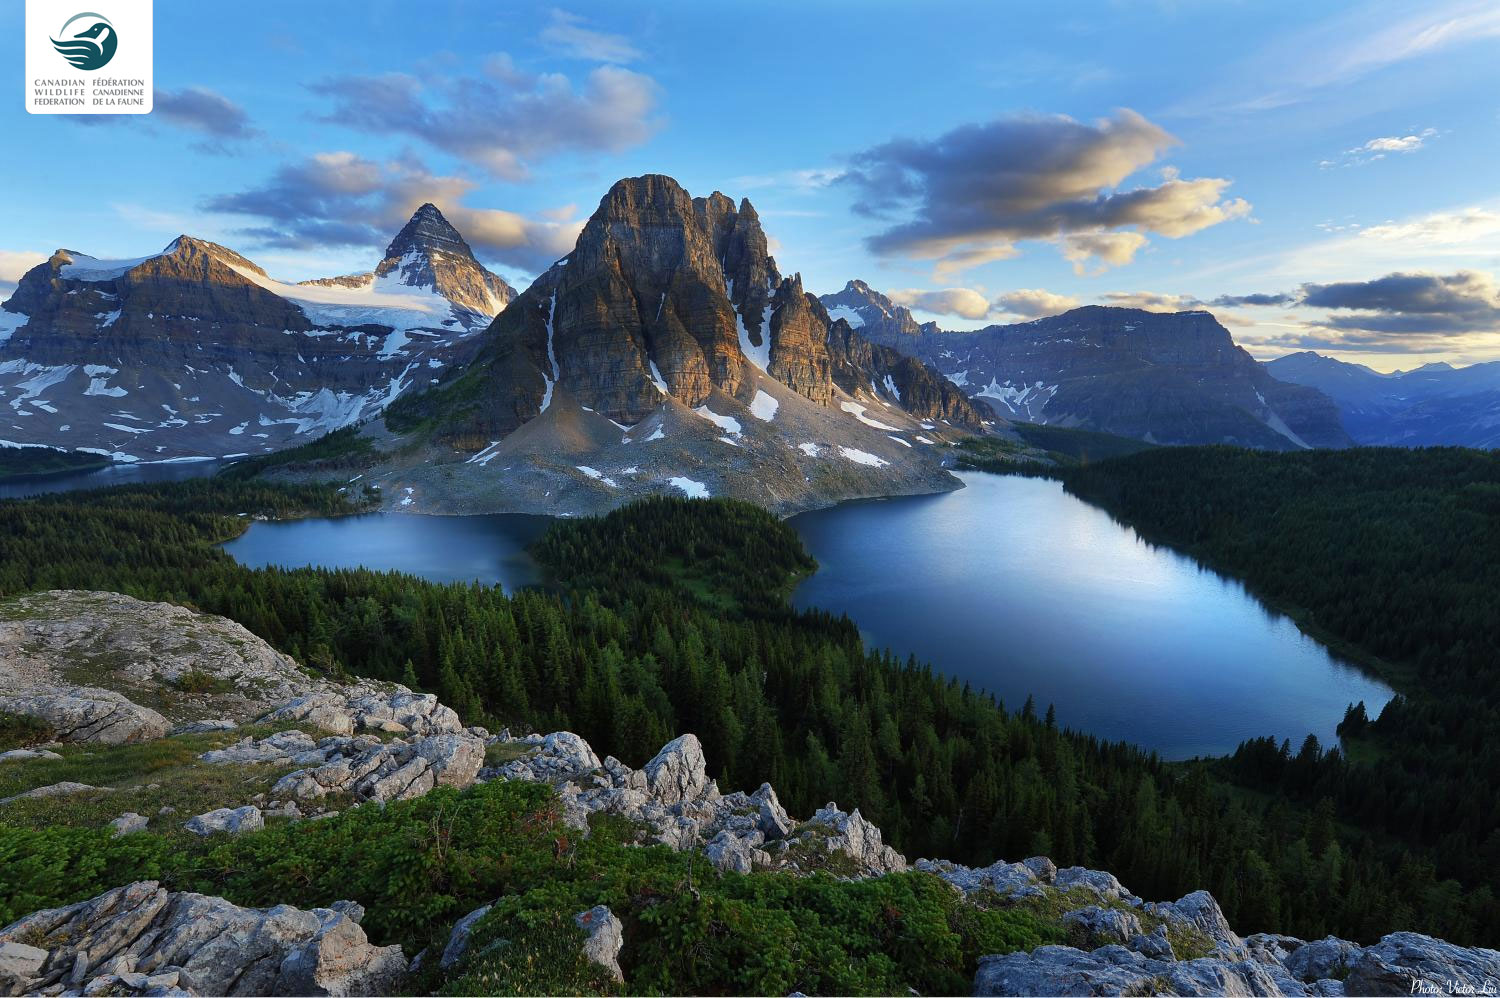 Canadian Wildlife Federation Mount Assiniboine 1500x998